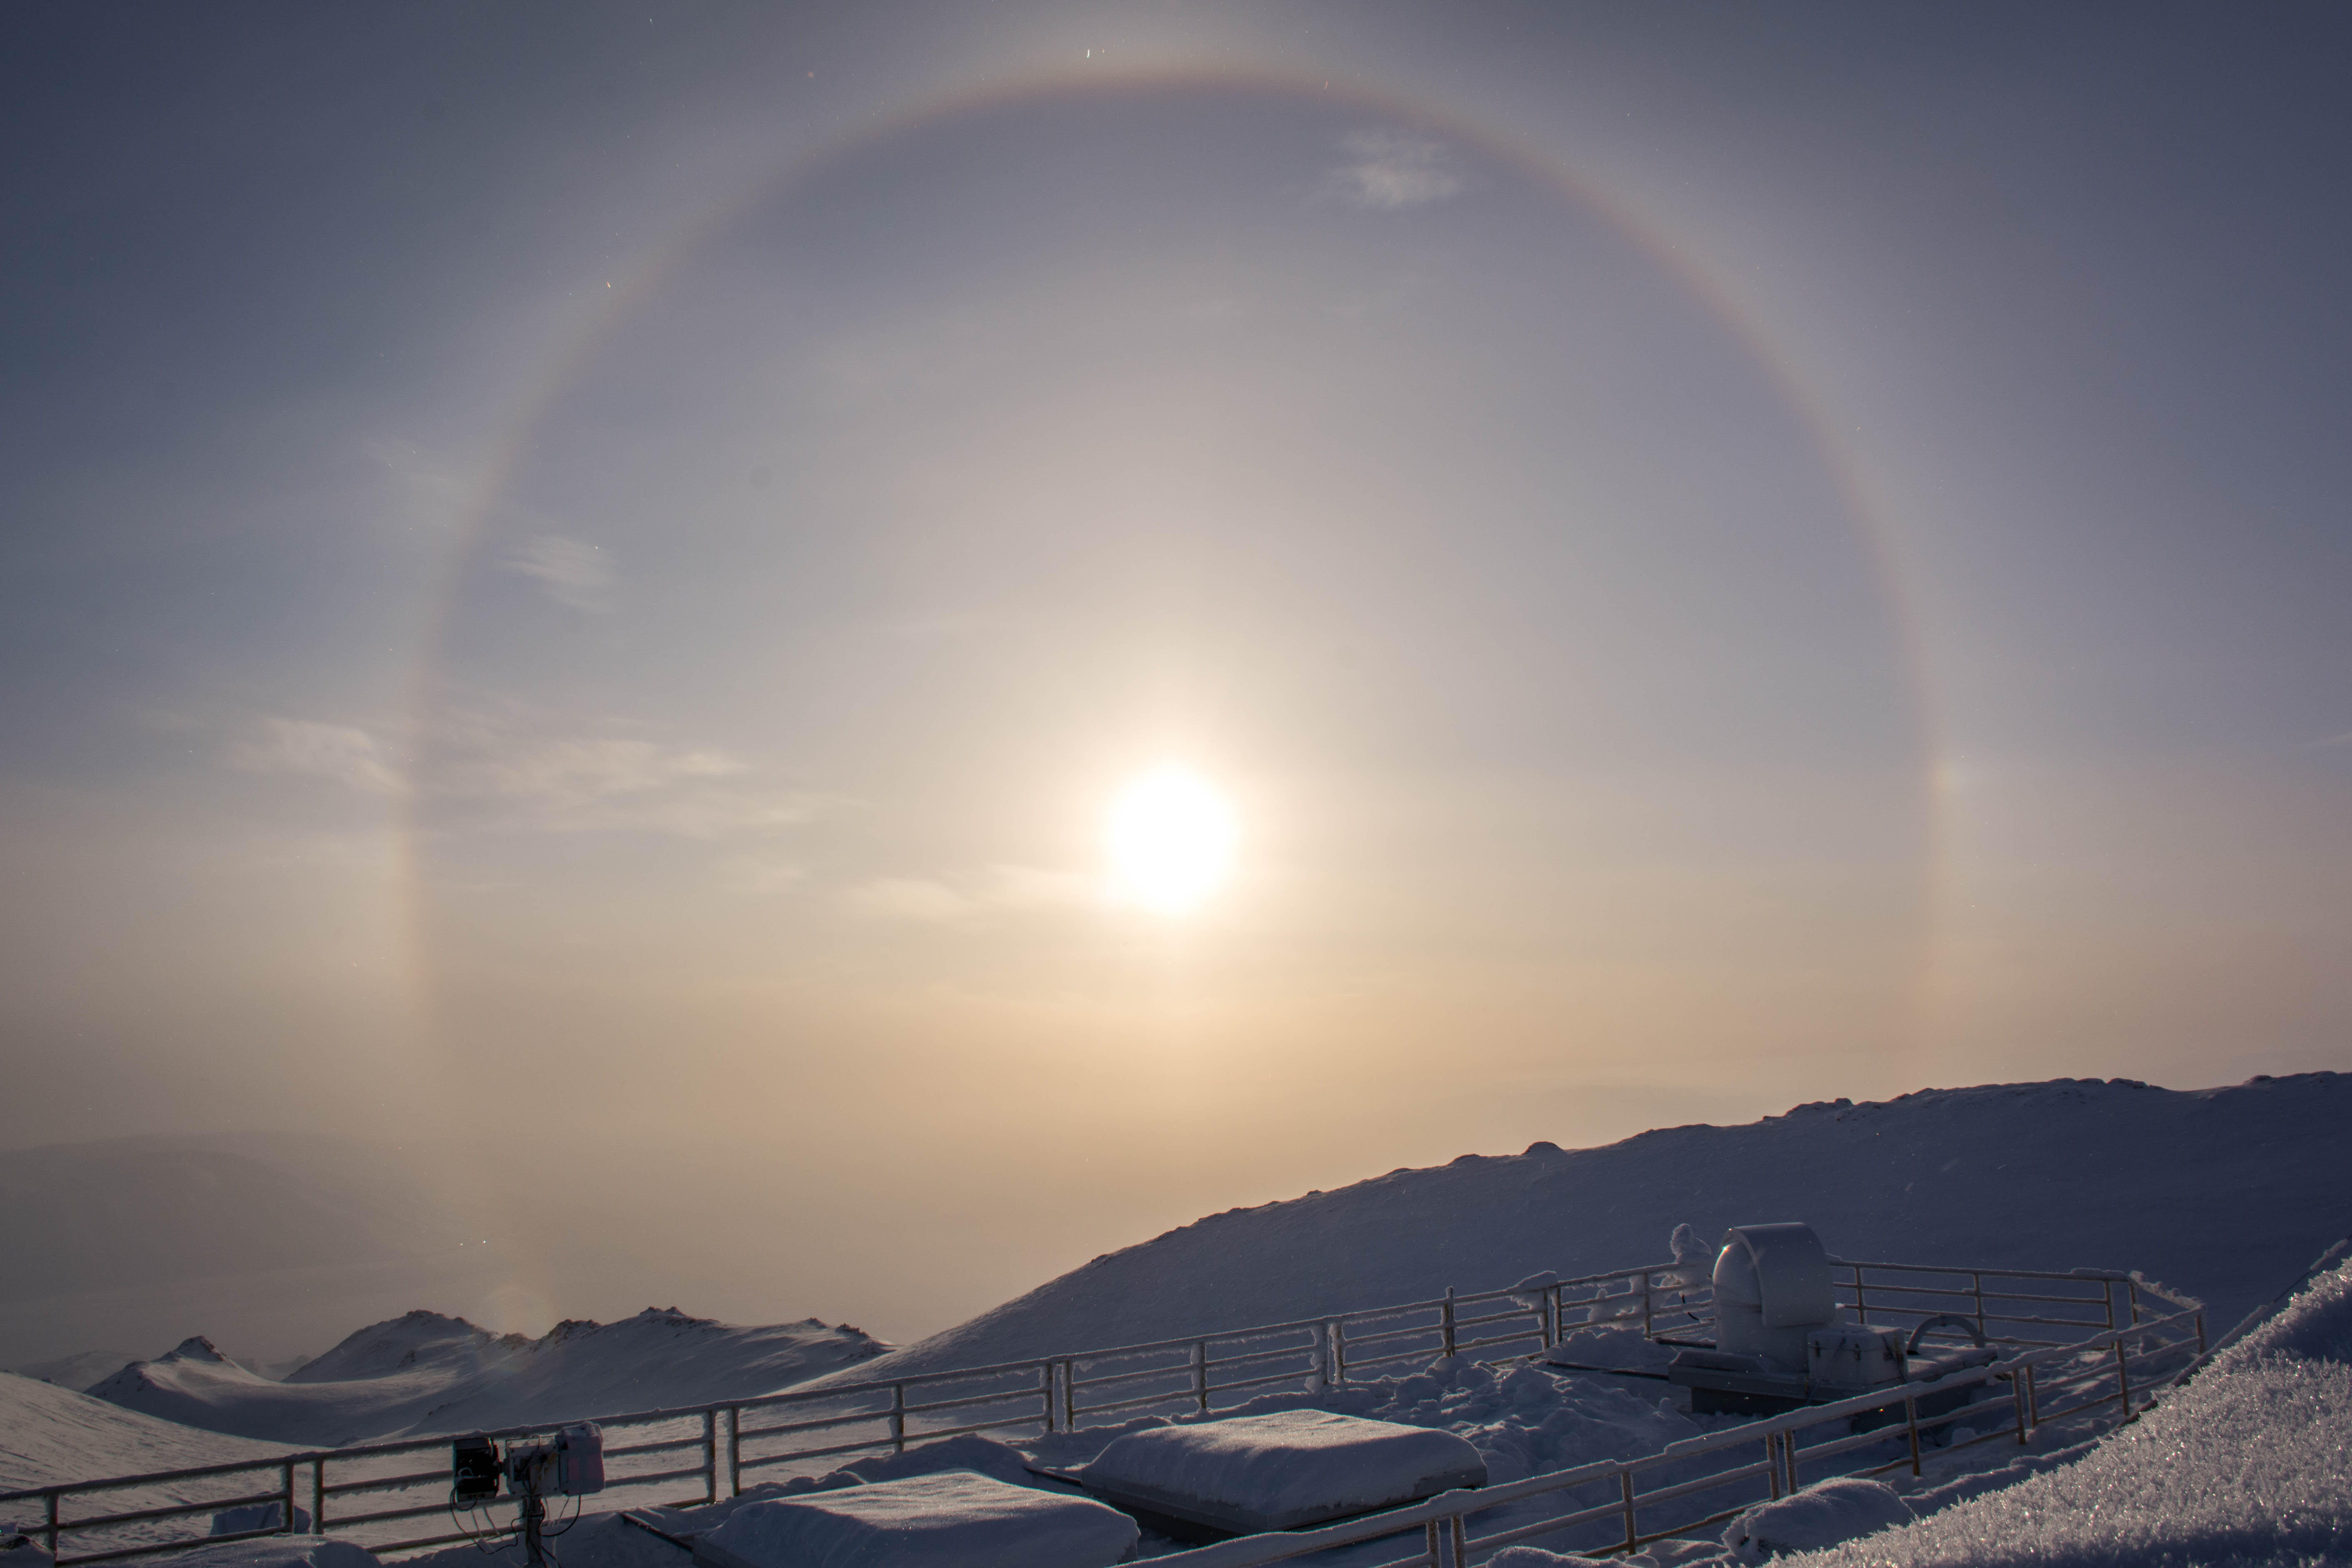 View of a solar halo from the PEARL Ridge Lab roof